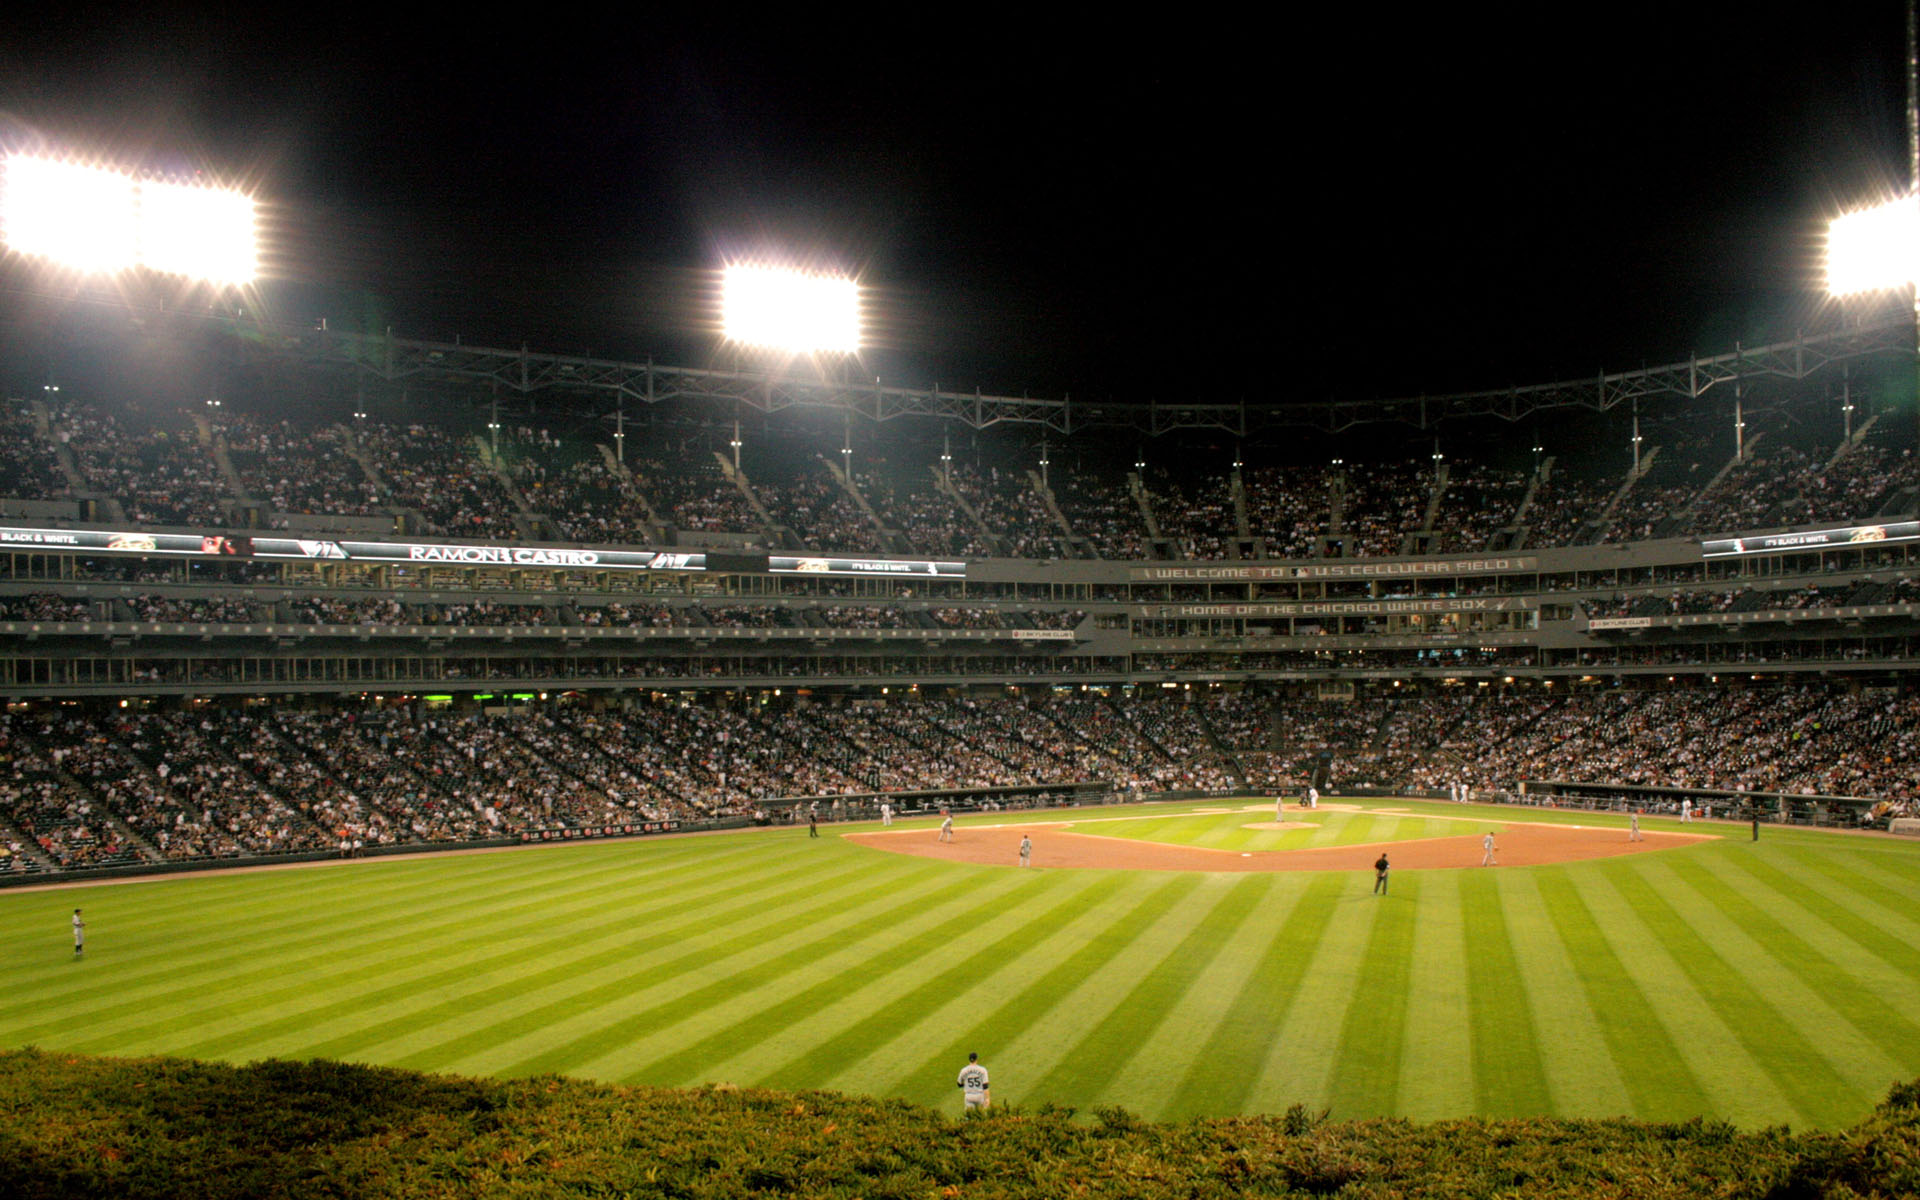 mlb baseball fields wallpaper - photo #24